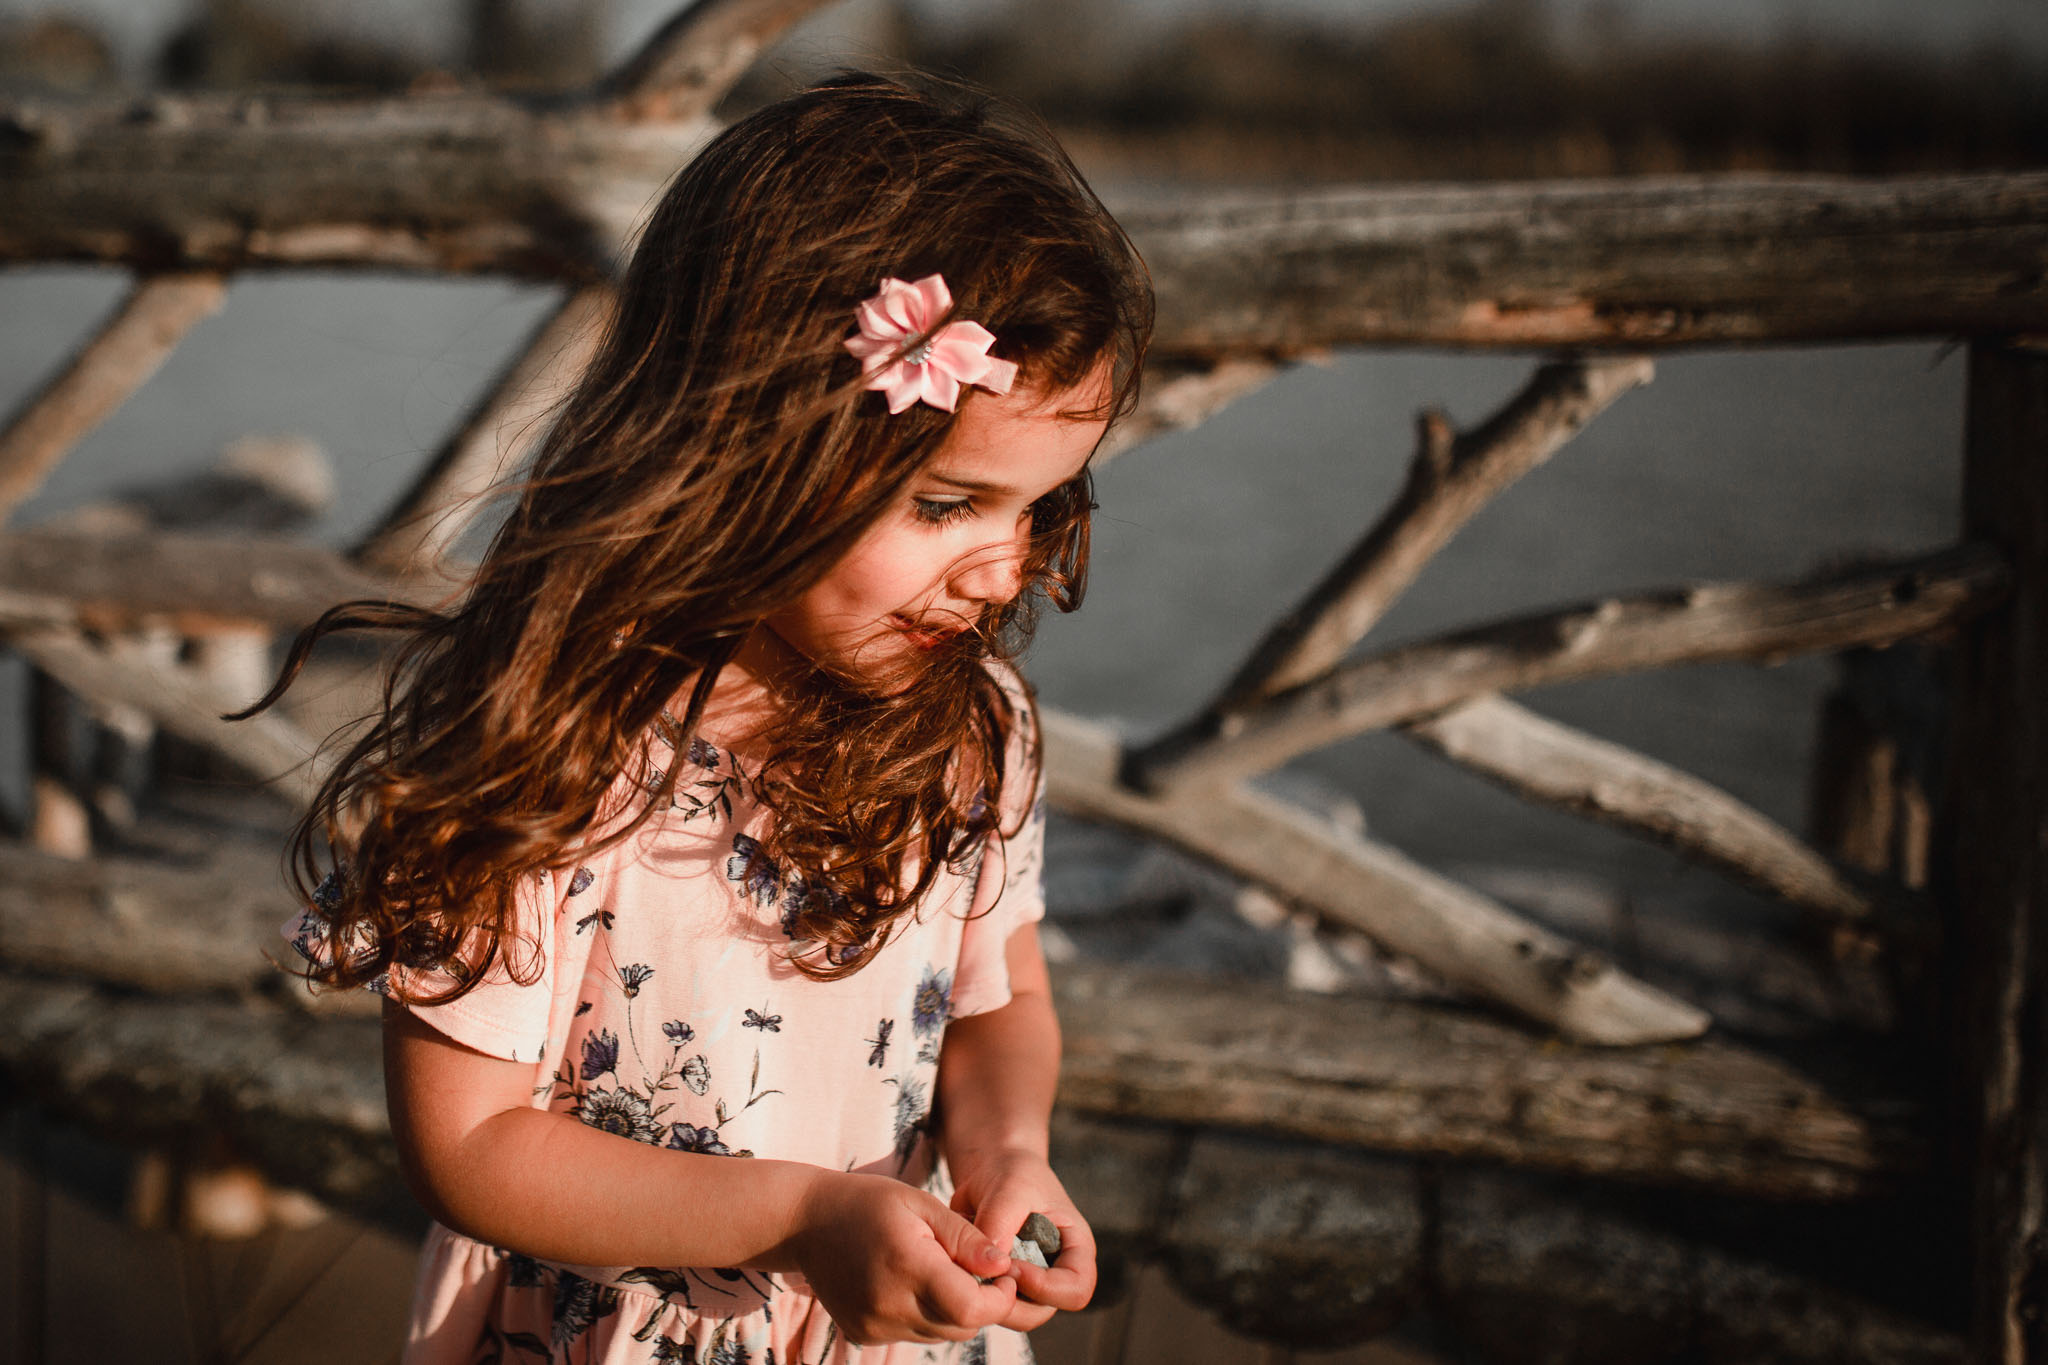 Girl in a pink dress with a flower in her hair holding a handful of rocks at Willowsford Boat House Aldie, VA